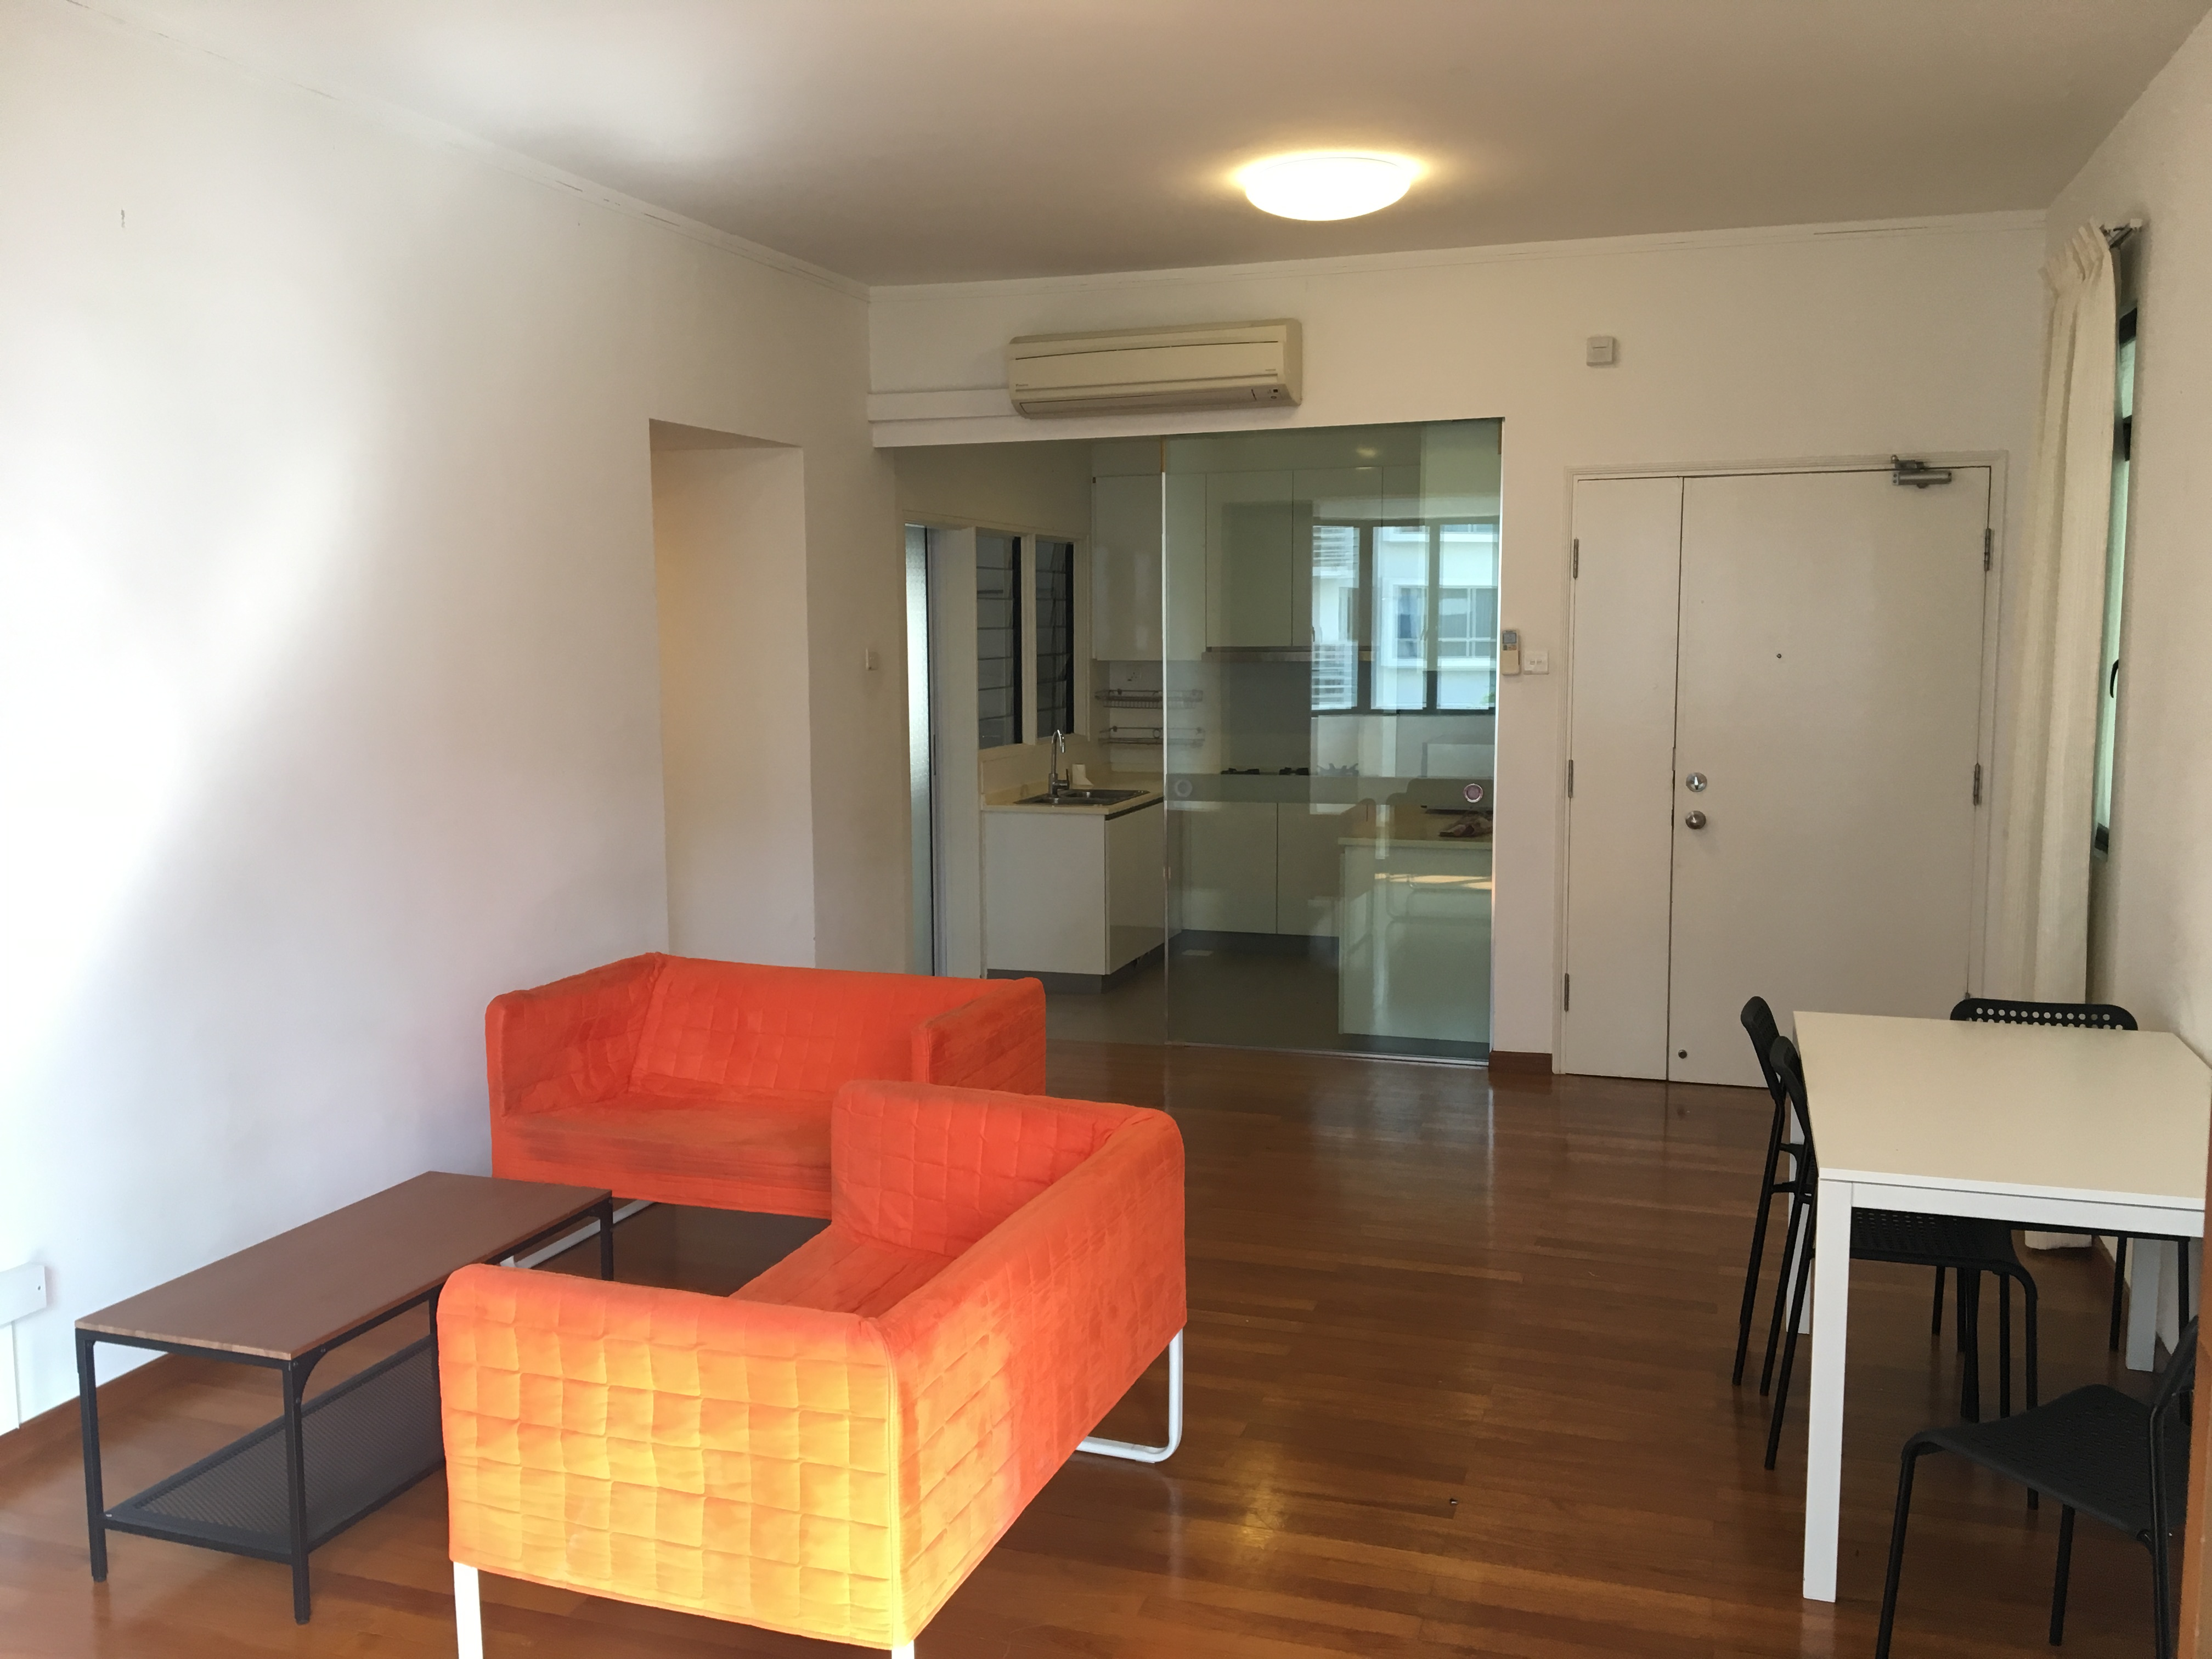 SPACIOUS 3BR UNIT AT AMBER GLADES FOR RENT